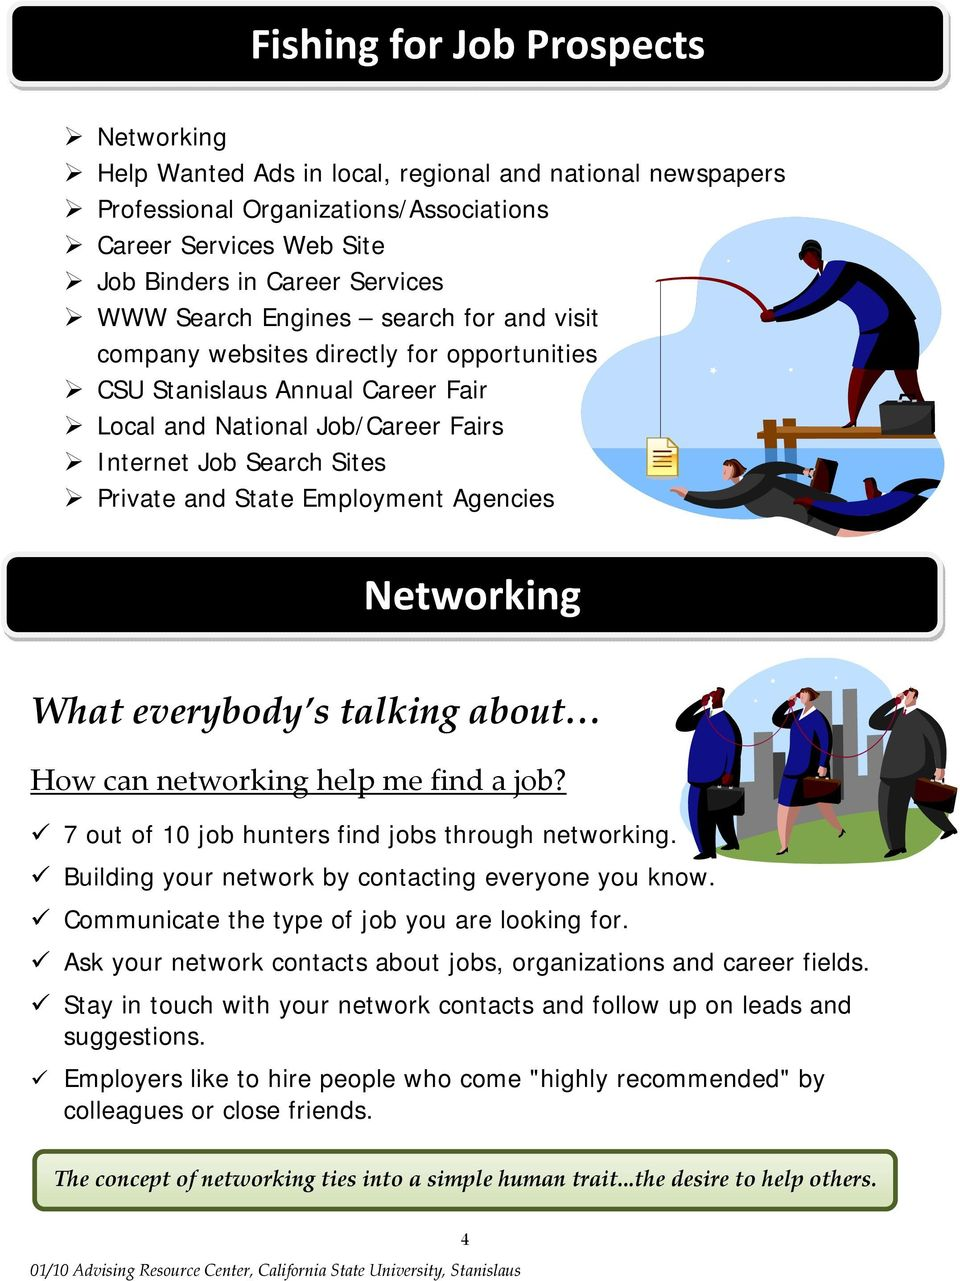 Employment Agencies Networking What everybody s talking about How can networking help me find a job? 7 out of 10 job hunters find jobs through networking.